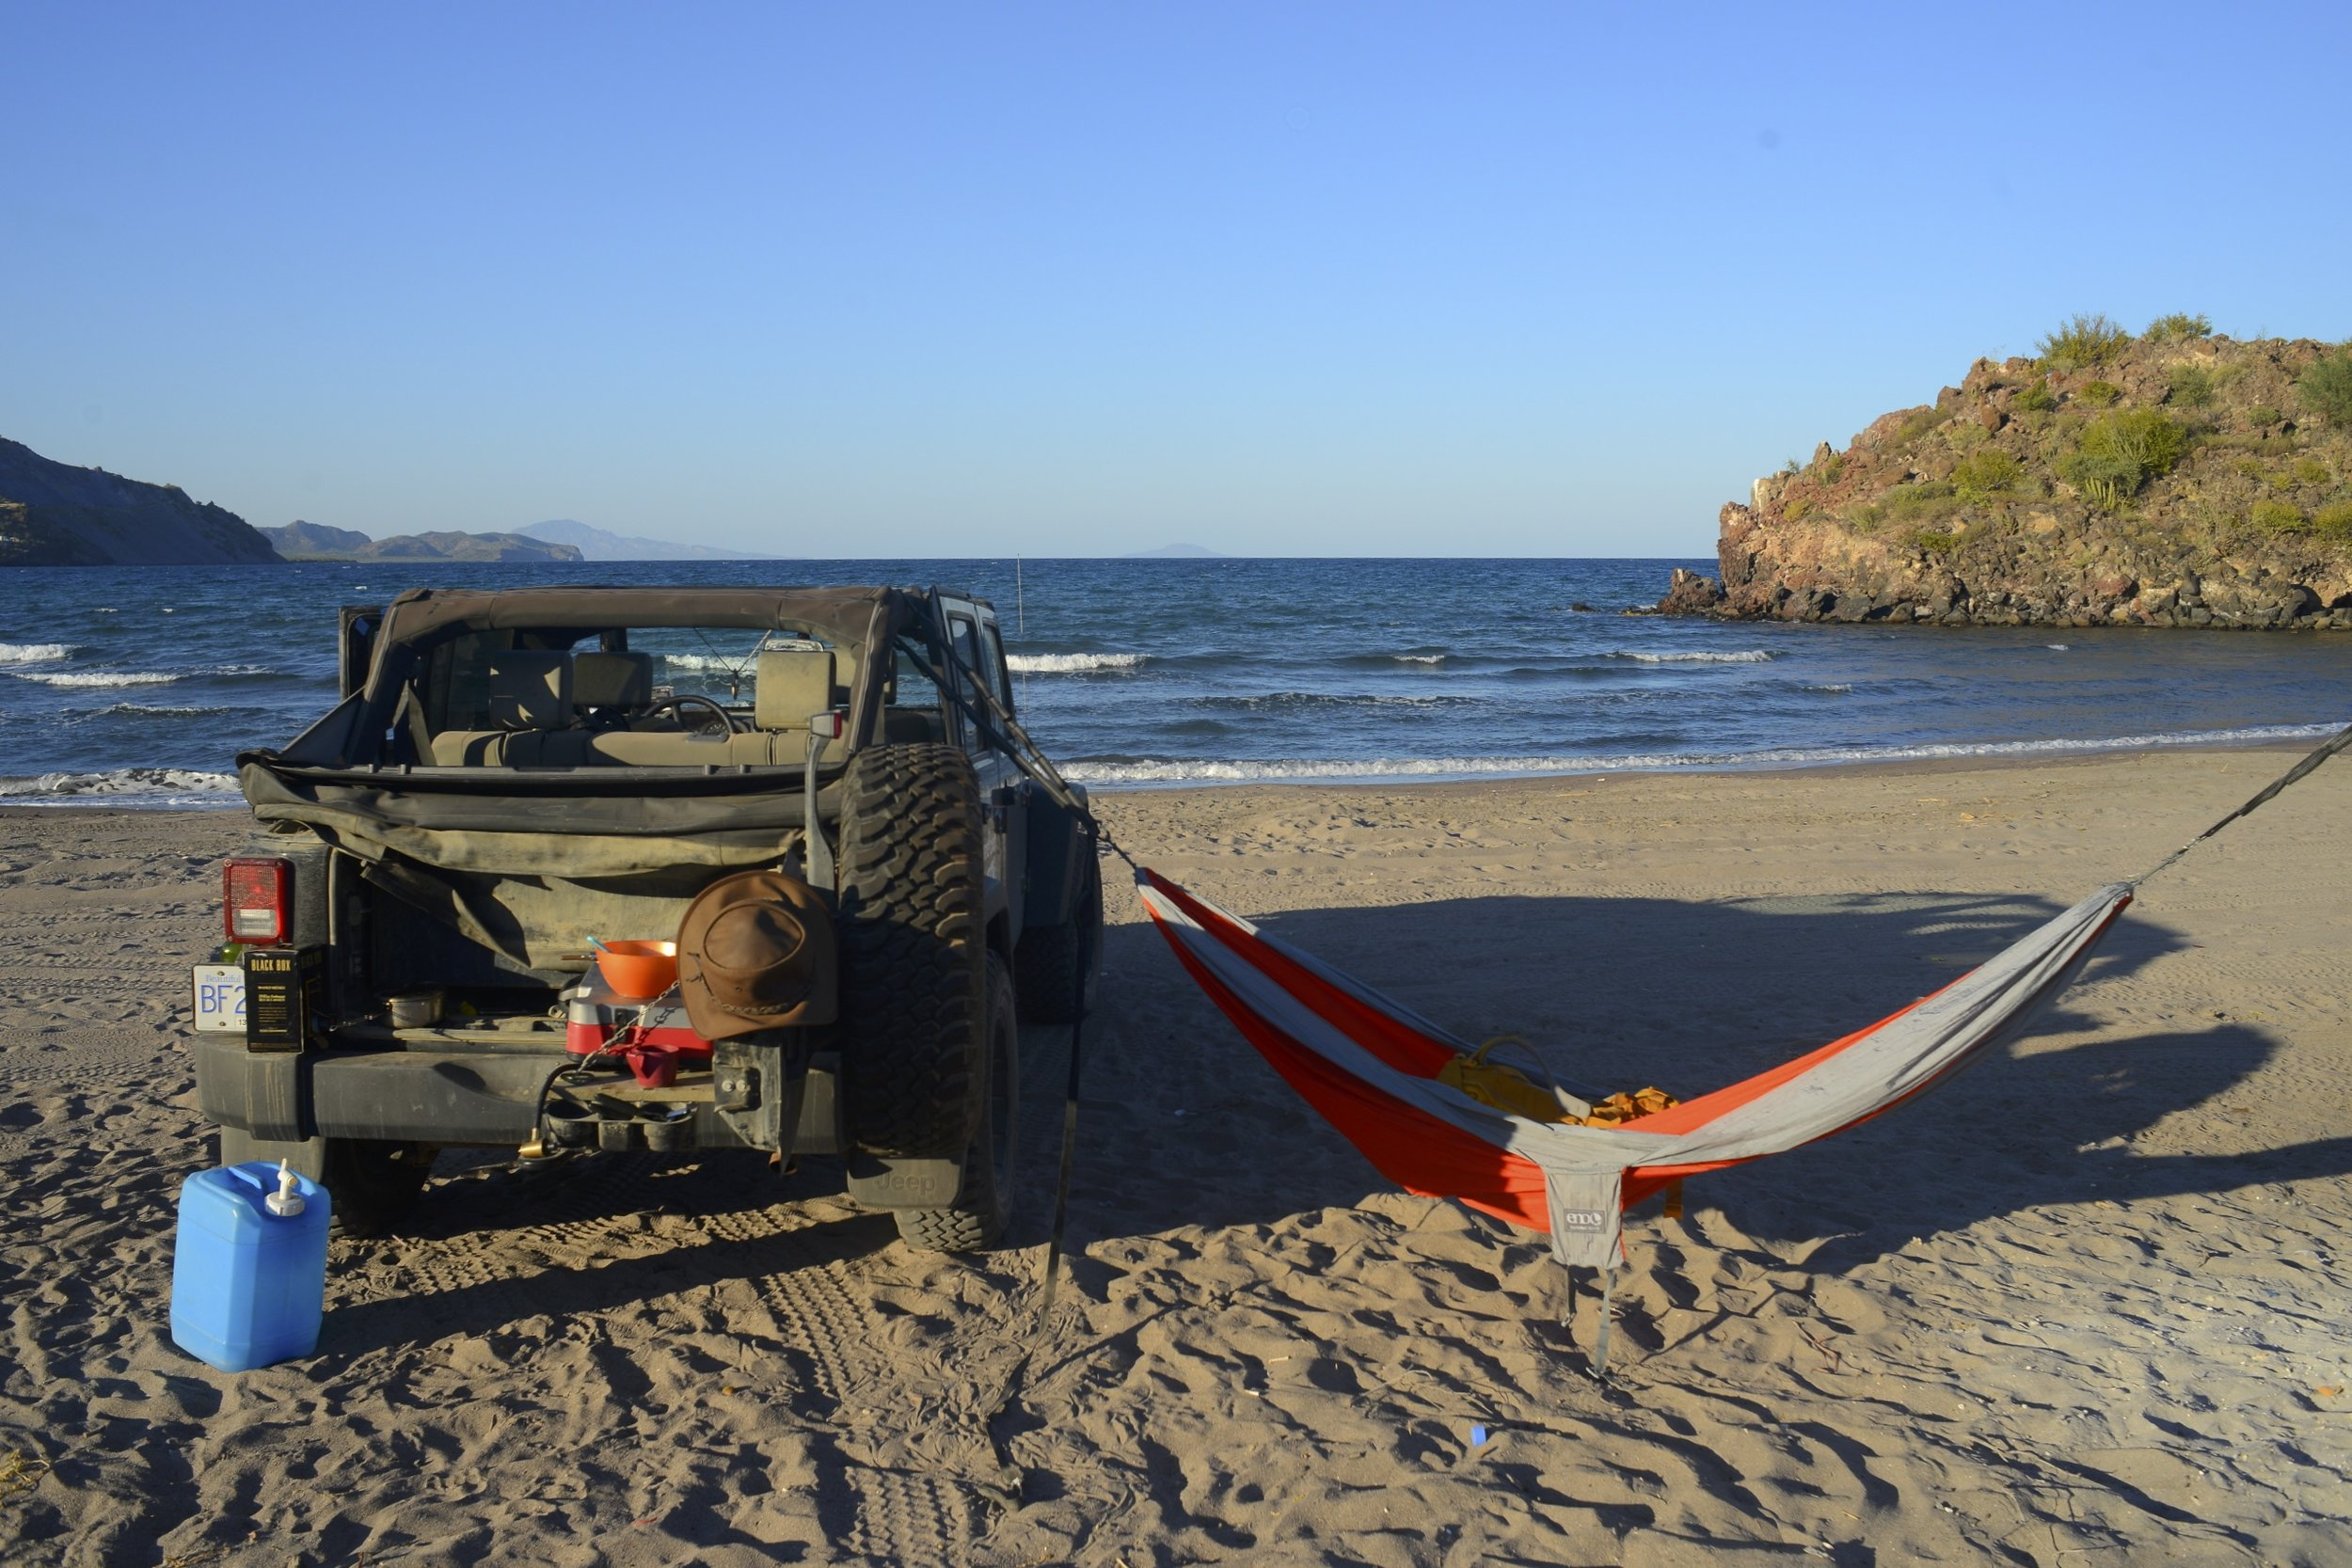 Living the dream in Baja California.